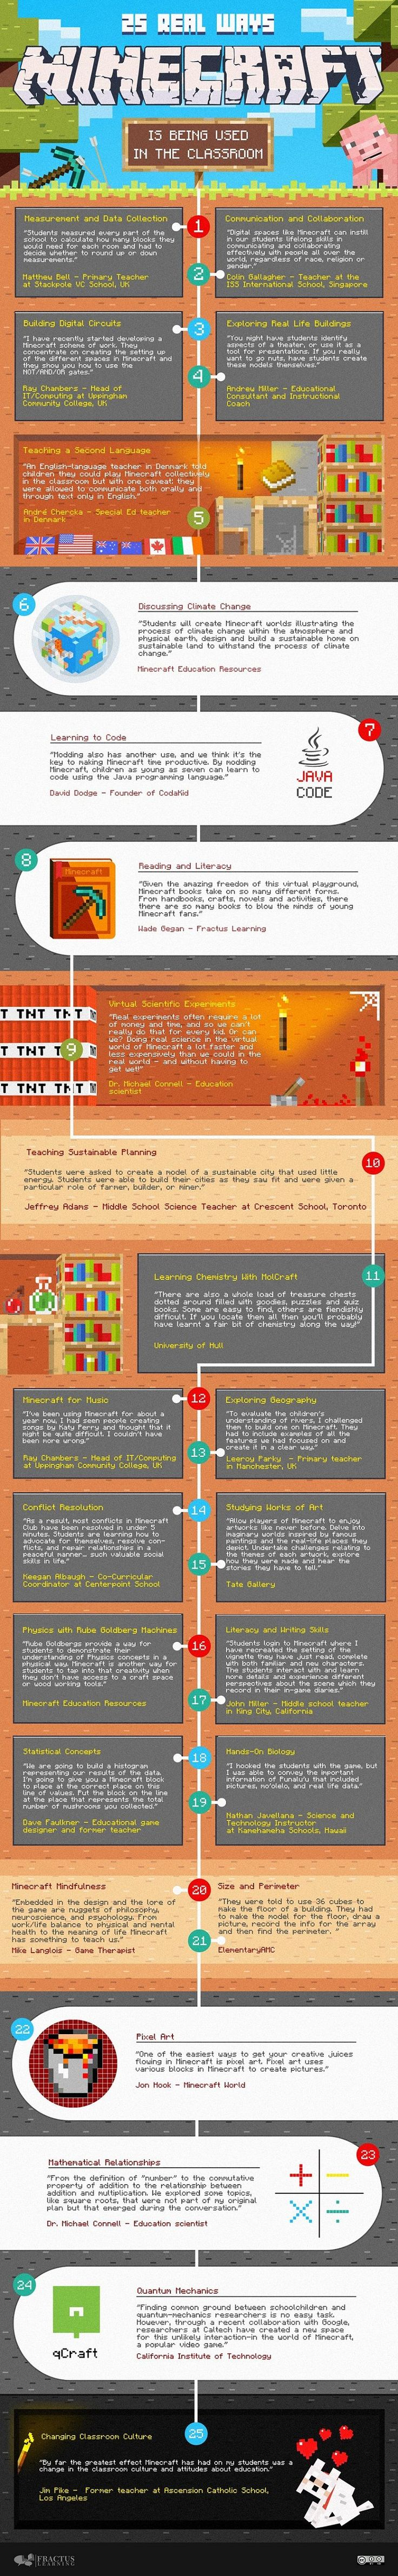 25 Real Ways Minecraft is Being Used in the Classroom Infographic - http://elearninginfographics.com/minecraft-in-the-classroom-infographic/